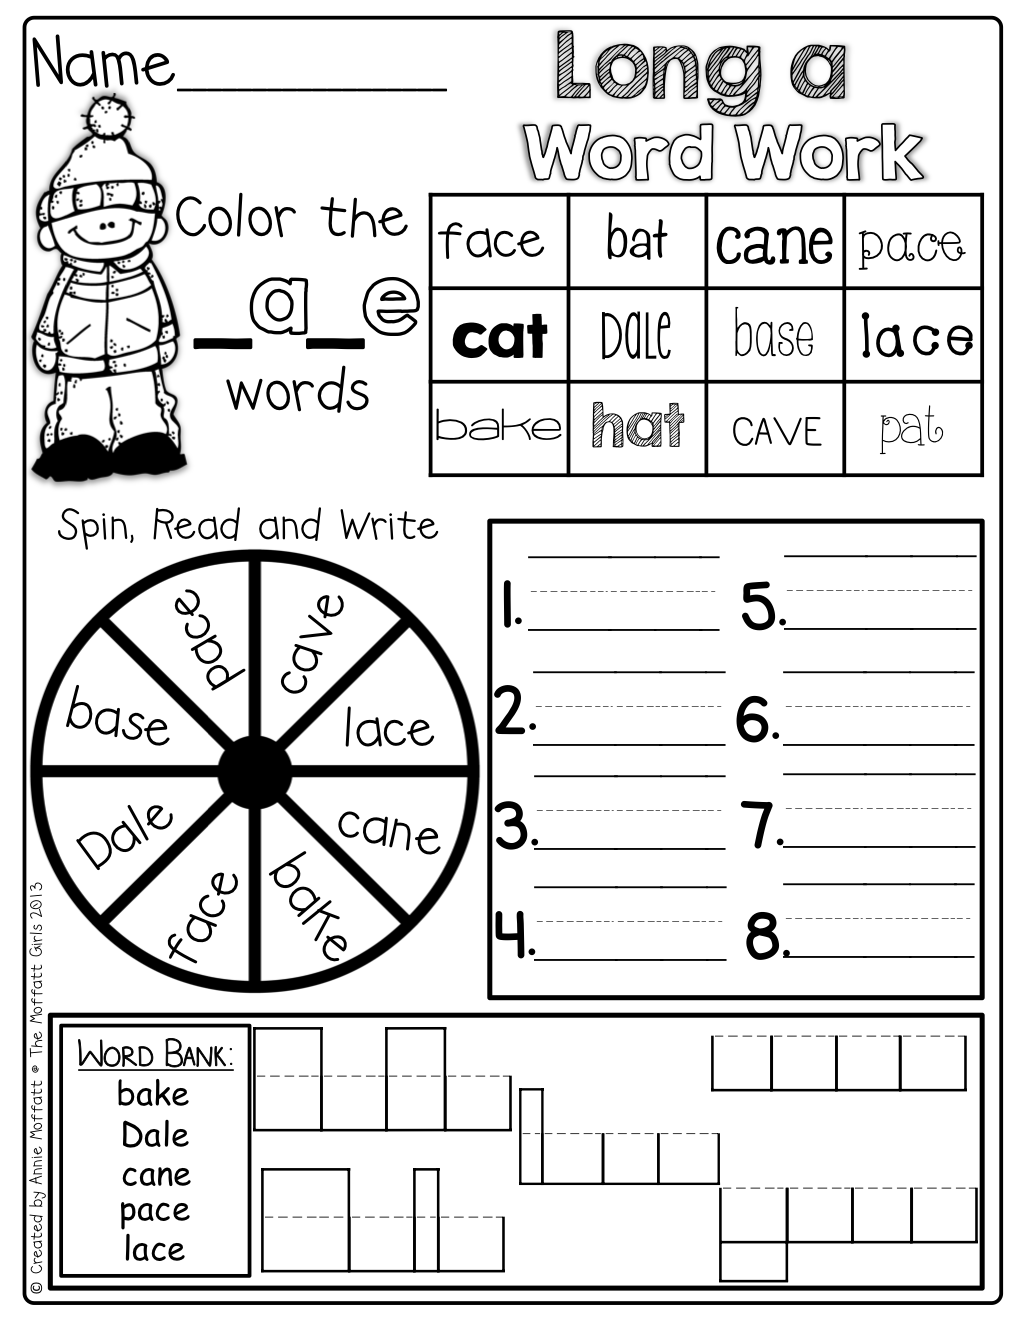 Cvce Word Work Perfect For Teaching The Silent E Words